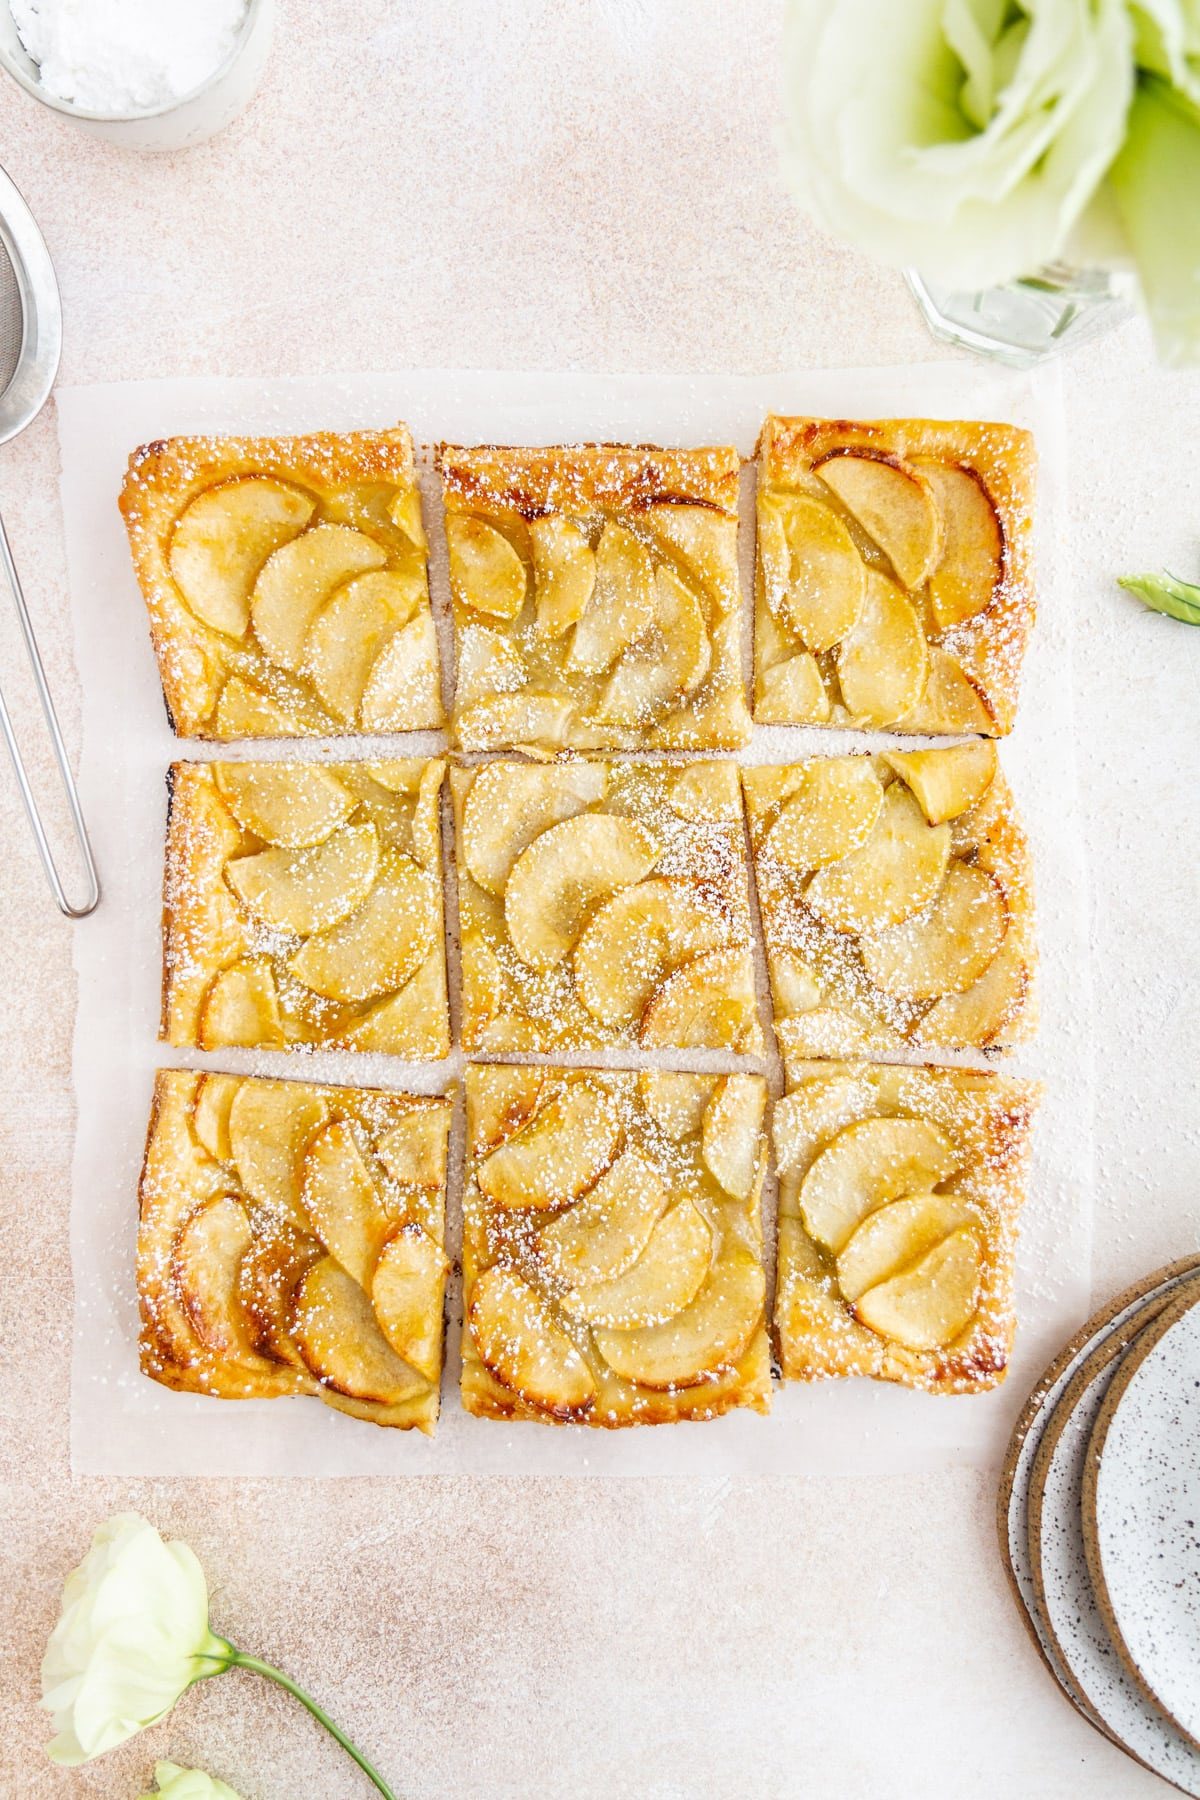 Easy French Apple Tart Recipe Girl Versus Dough